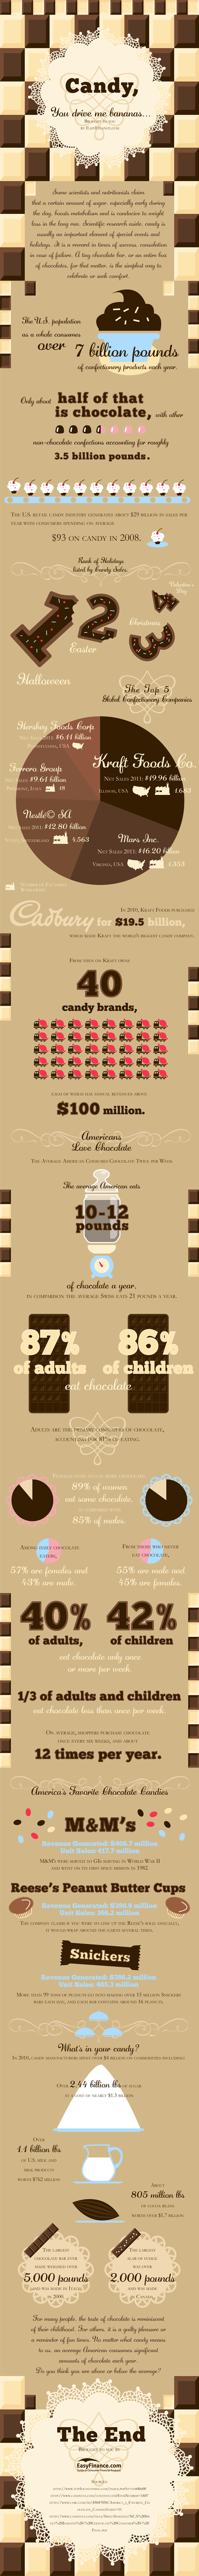 Candy-Industry-Statistics